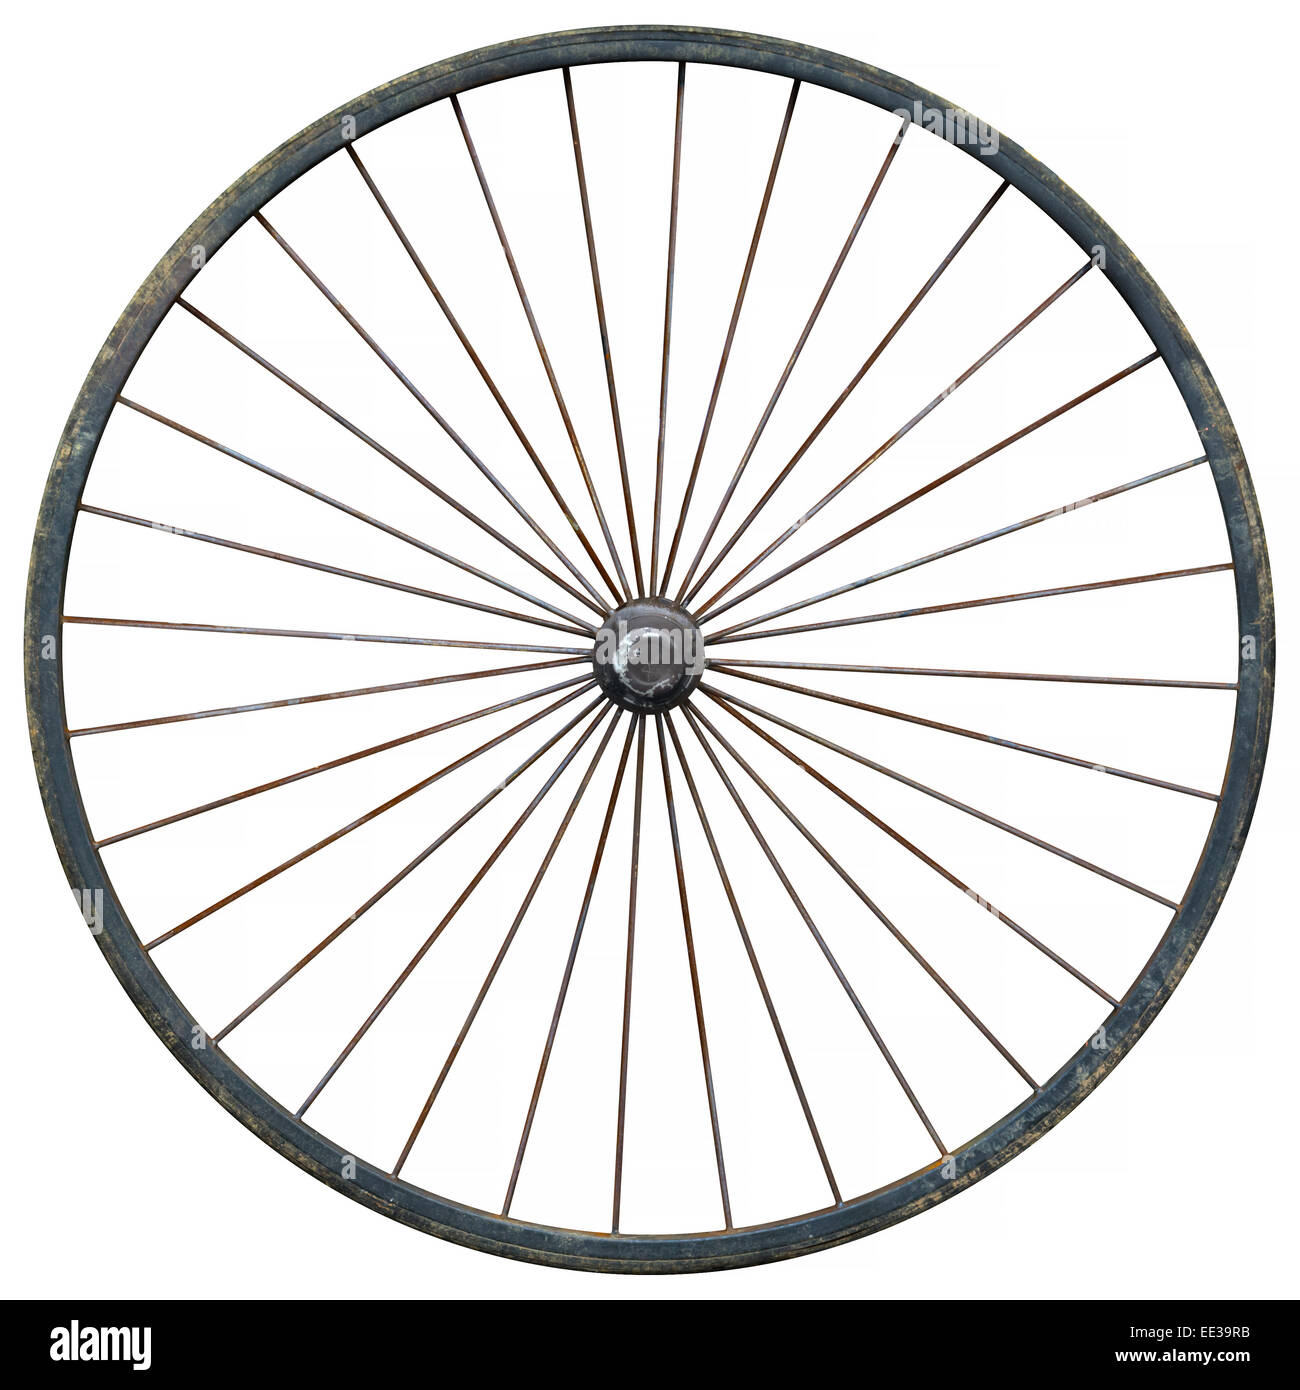 Antique Wire Wheel Stock Photos & Antique Wire Wheel Stock Images ...